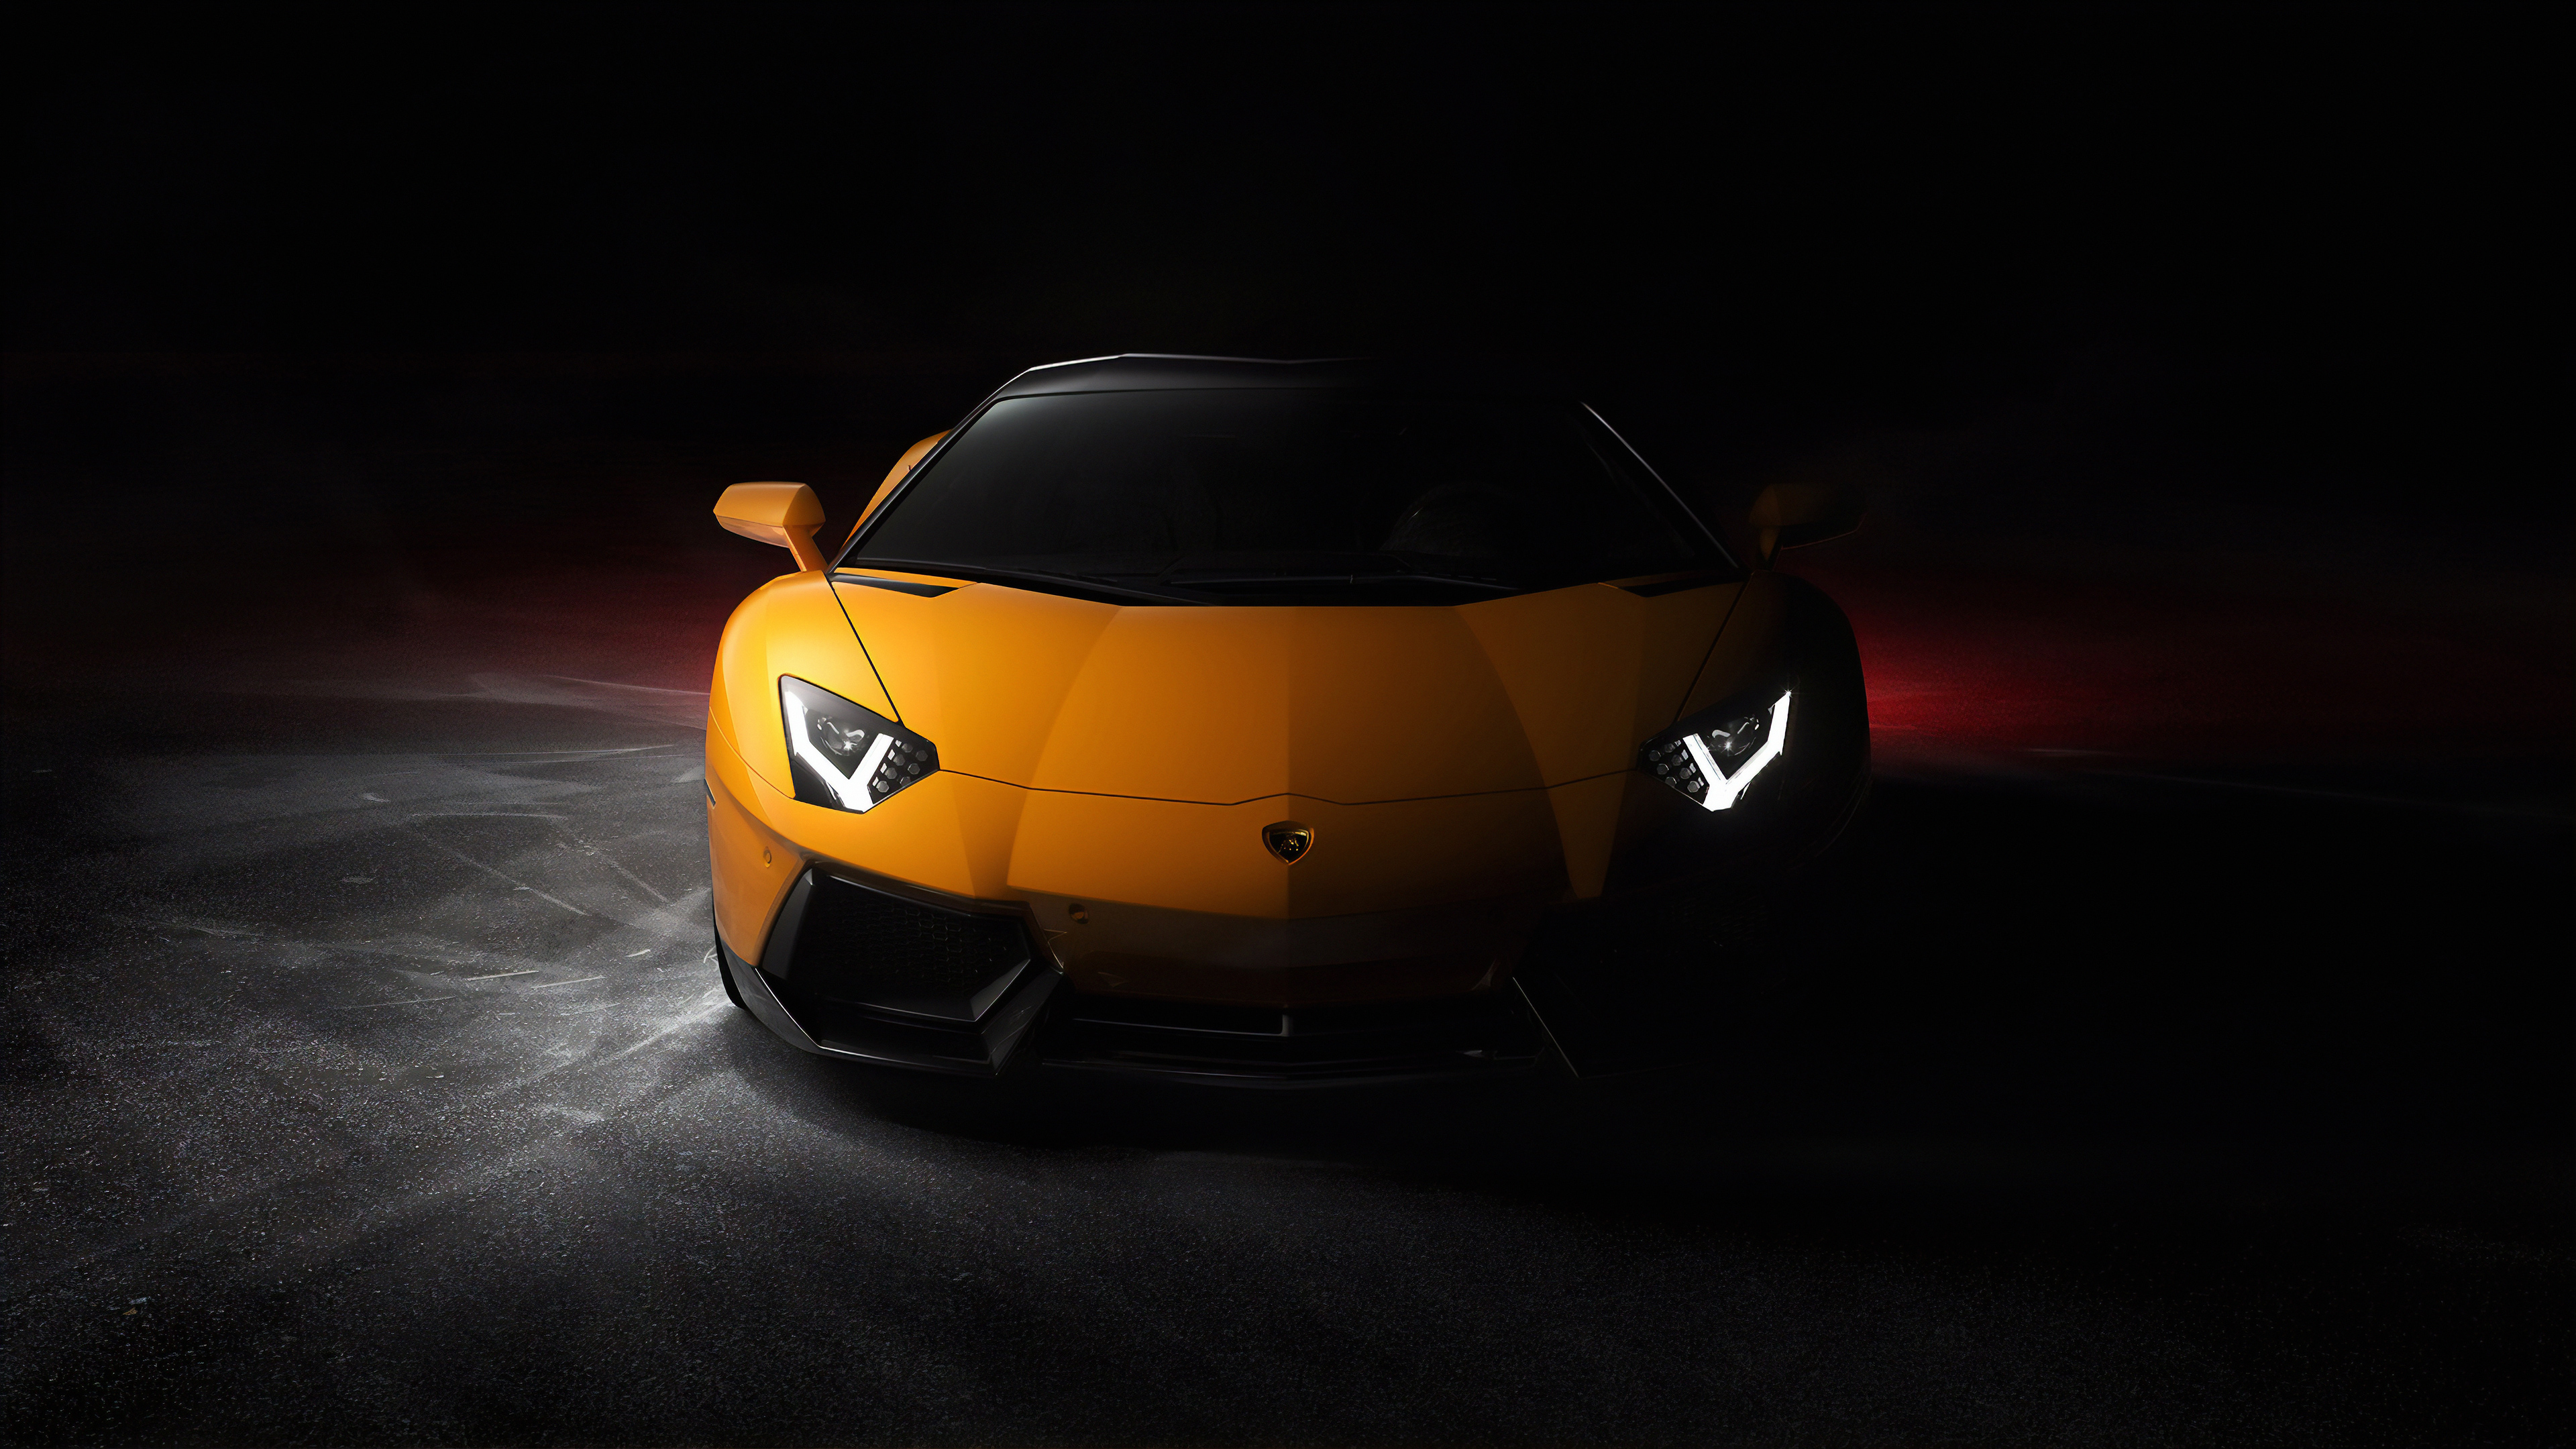 yellow lamborghini aventador front 1563221088 - Yellow Lamborghini Aventador Front - lamborghini wallpapers, lamborghini aventador wallpapers, hd-wallpapers, cars wallpapers, 4k-wallpapers